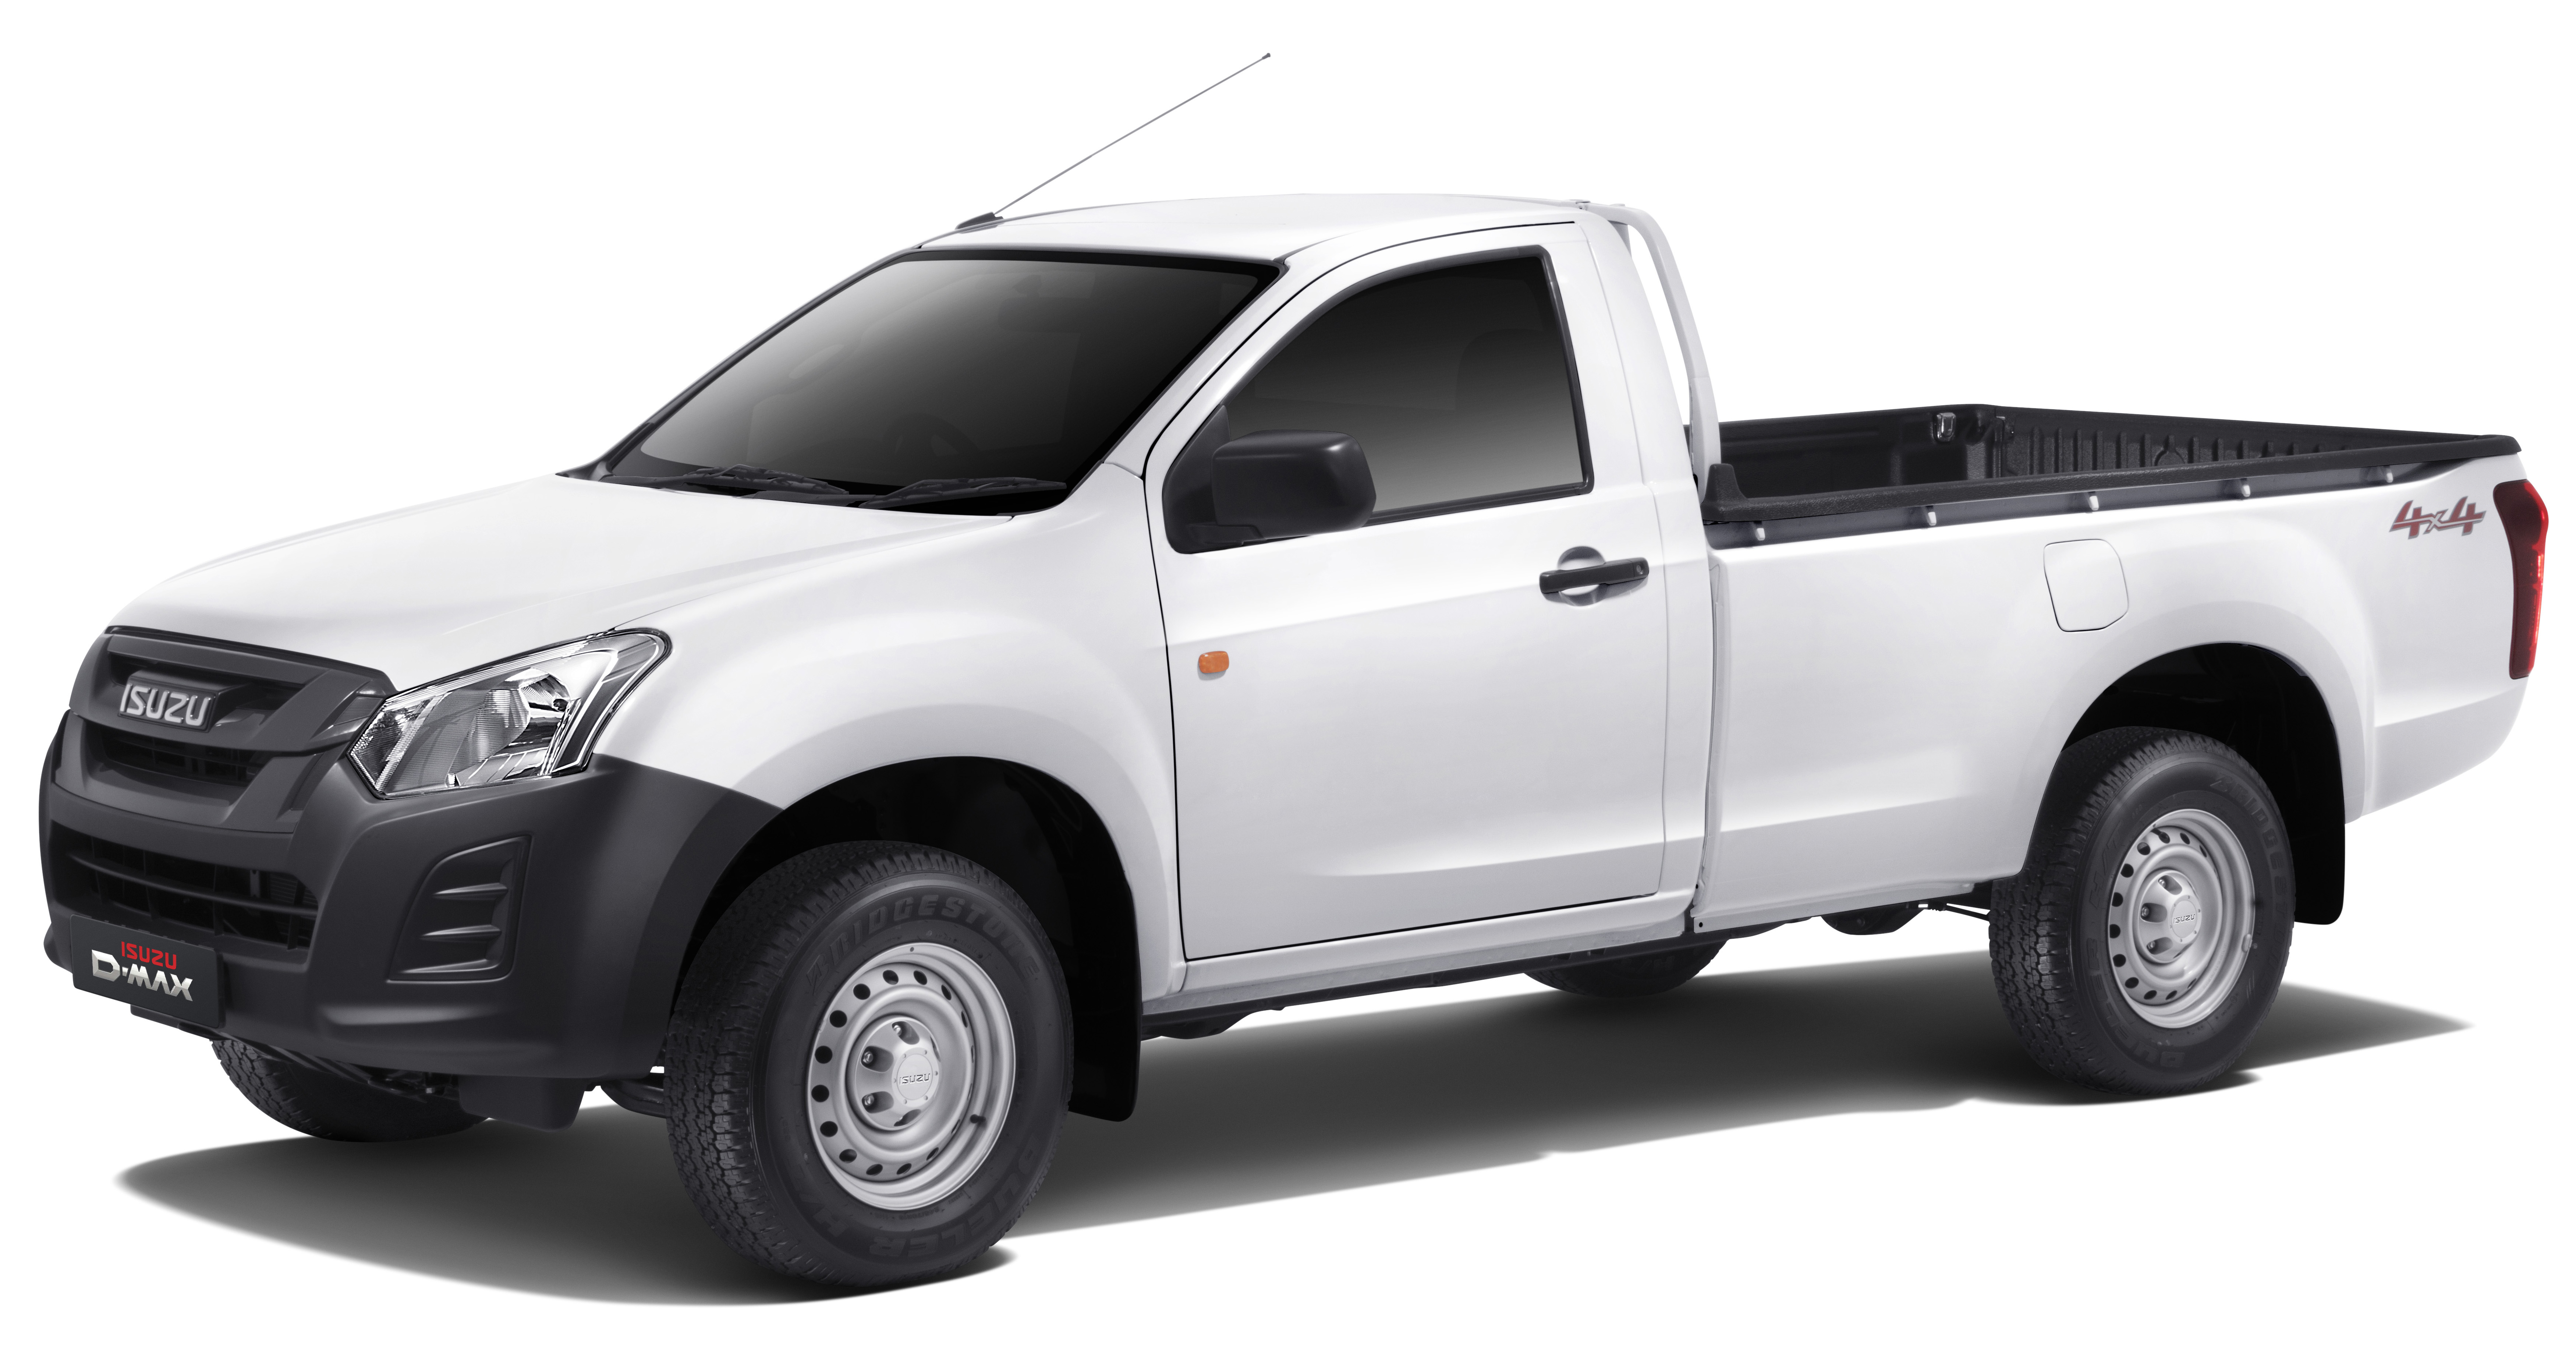 isuzu d max 3 0l single cab launched in malaysia 177 ps. Black Bedroom Furniture Sets. Home Design Ideas